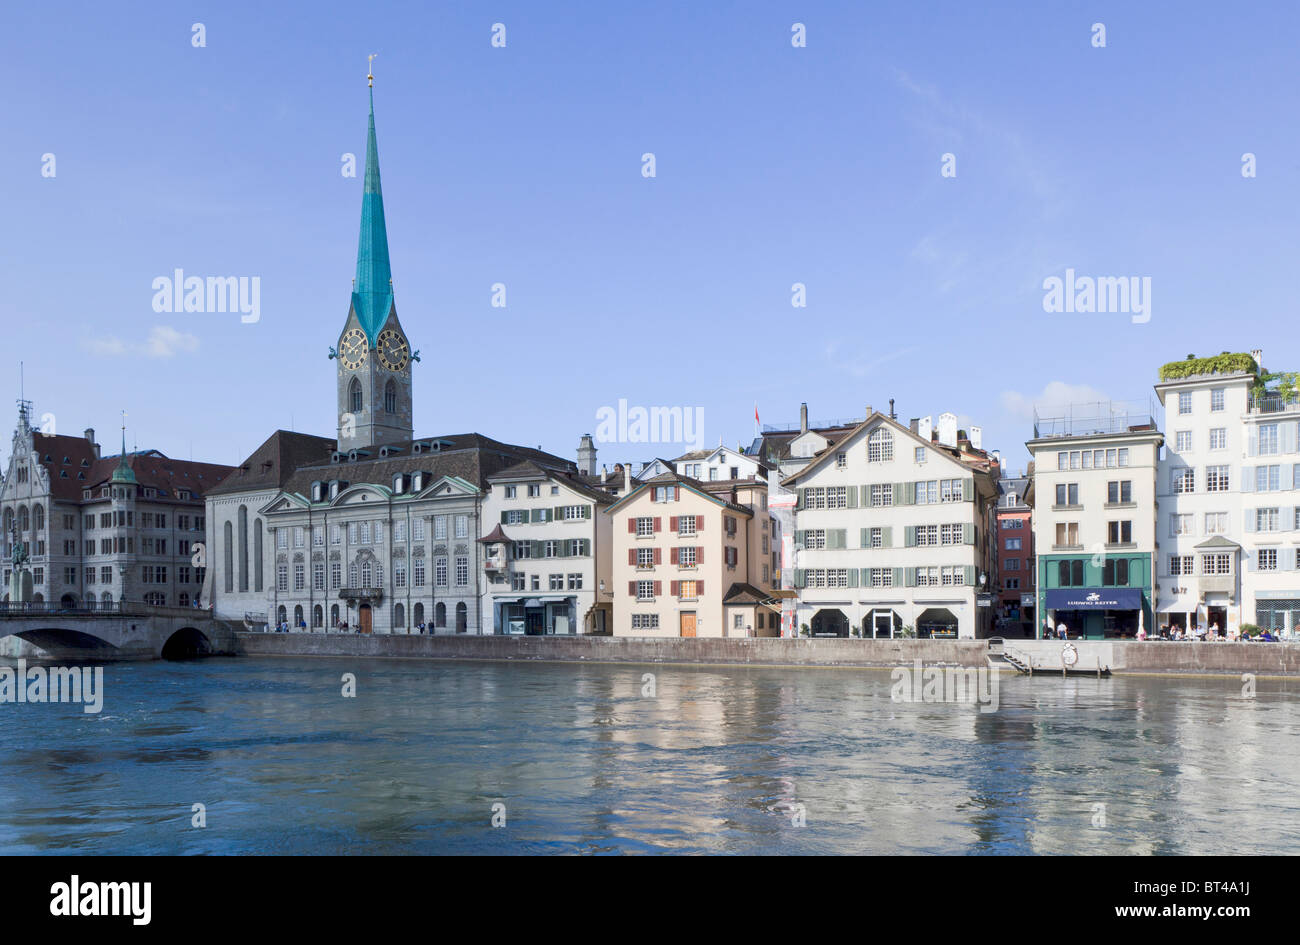 Looking across the Limmat river in Zurich at Fraumunster Abbey - Stock Image